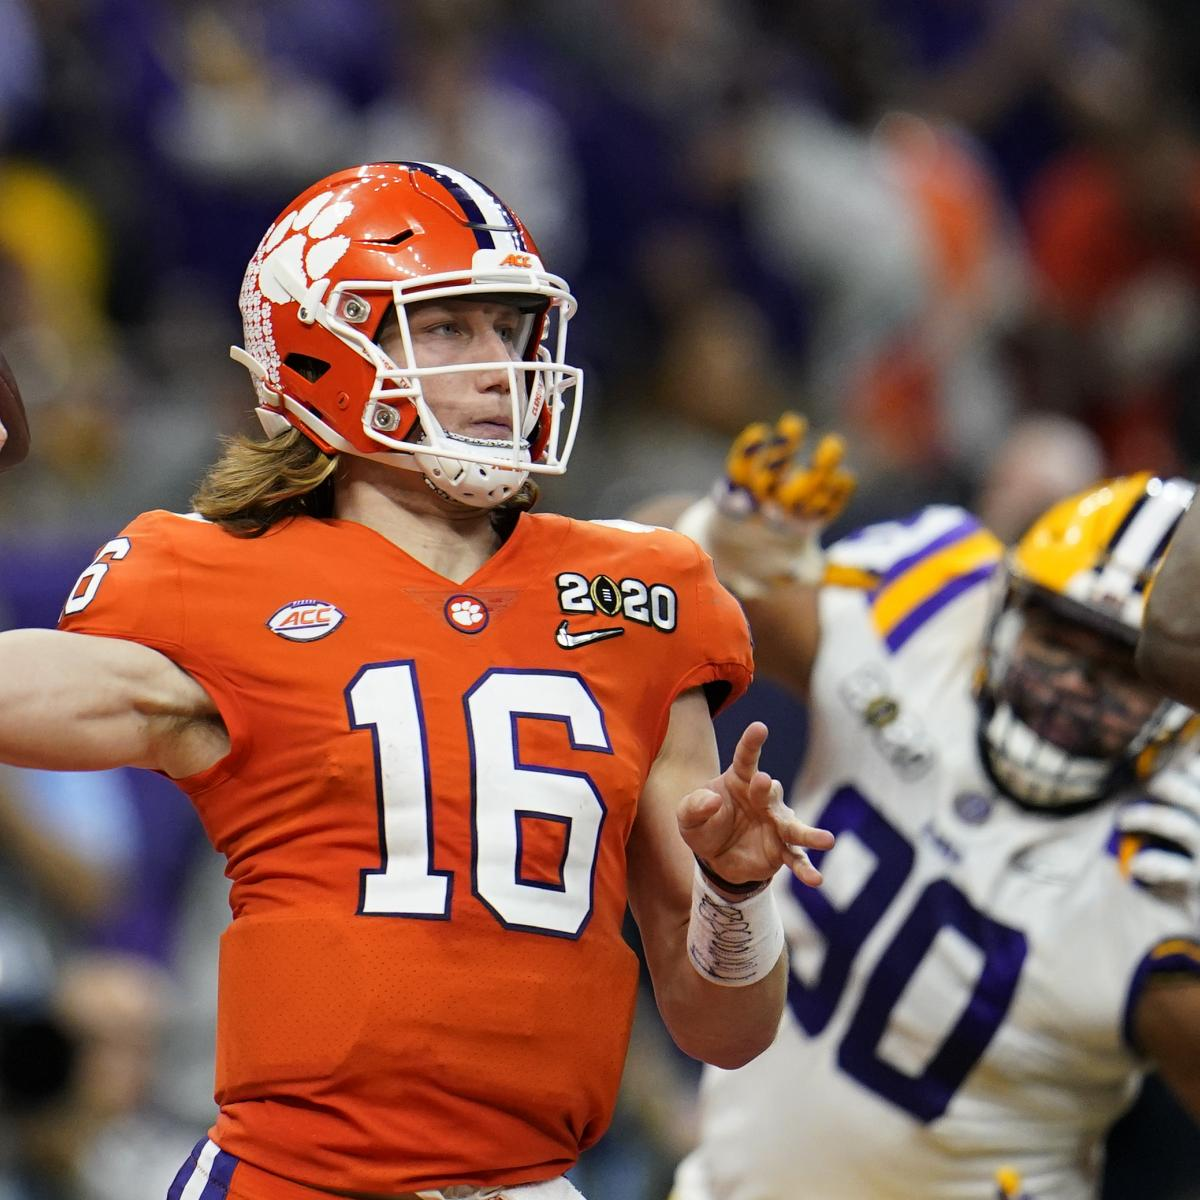 NFL Draft 2021: Mock Selection Order, Predictions for Trevor Lawrence, Top Picks